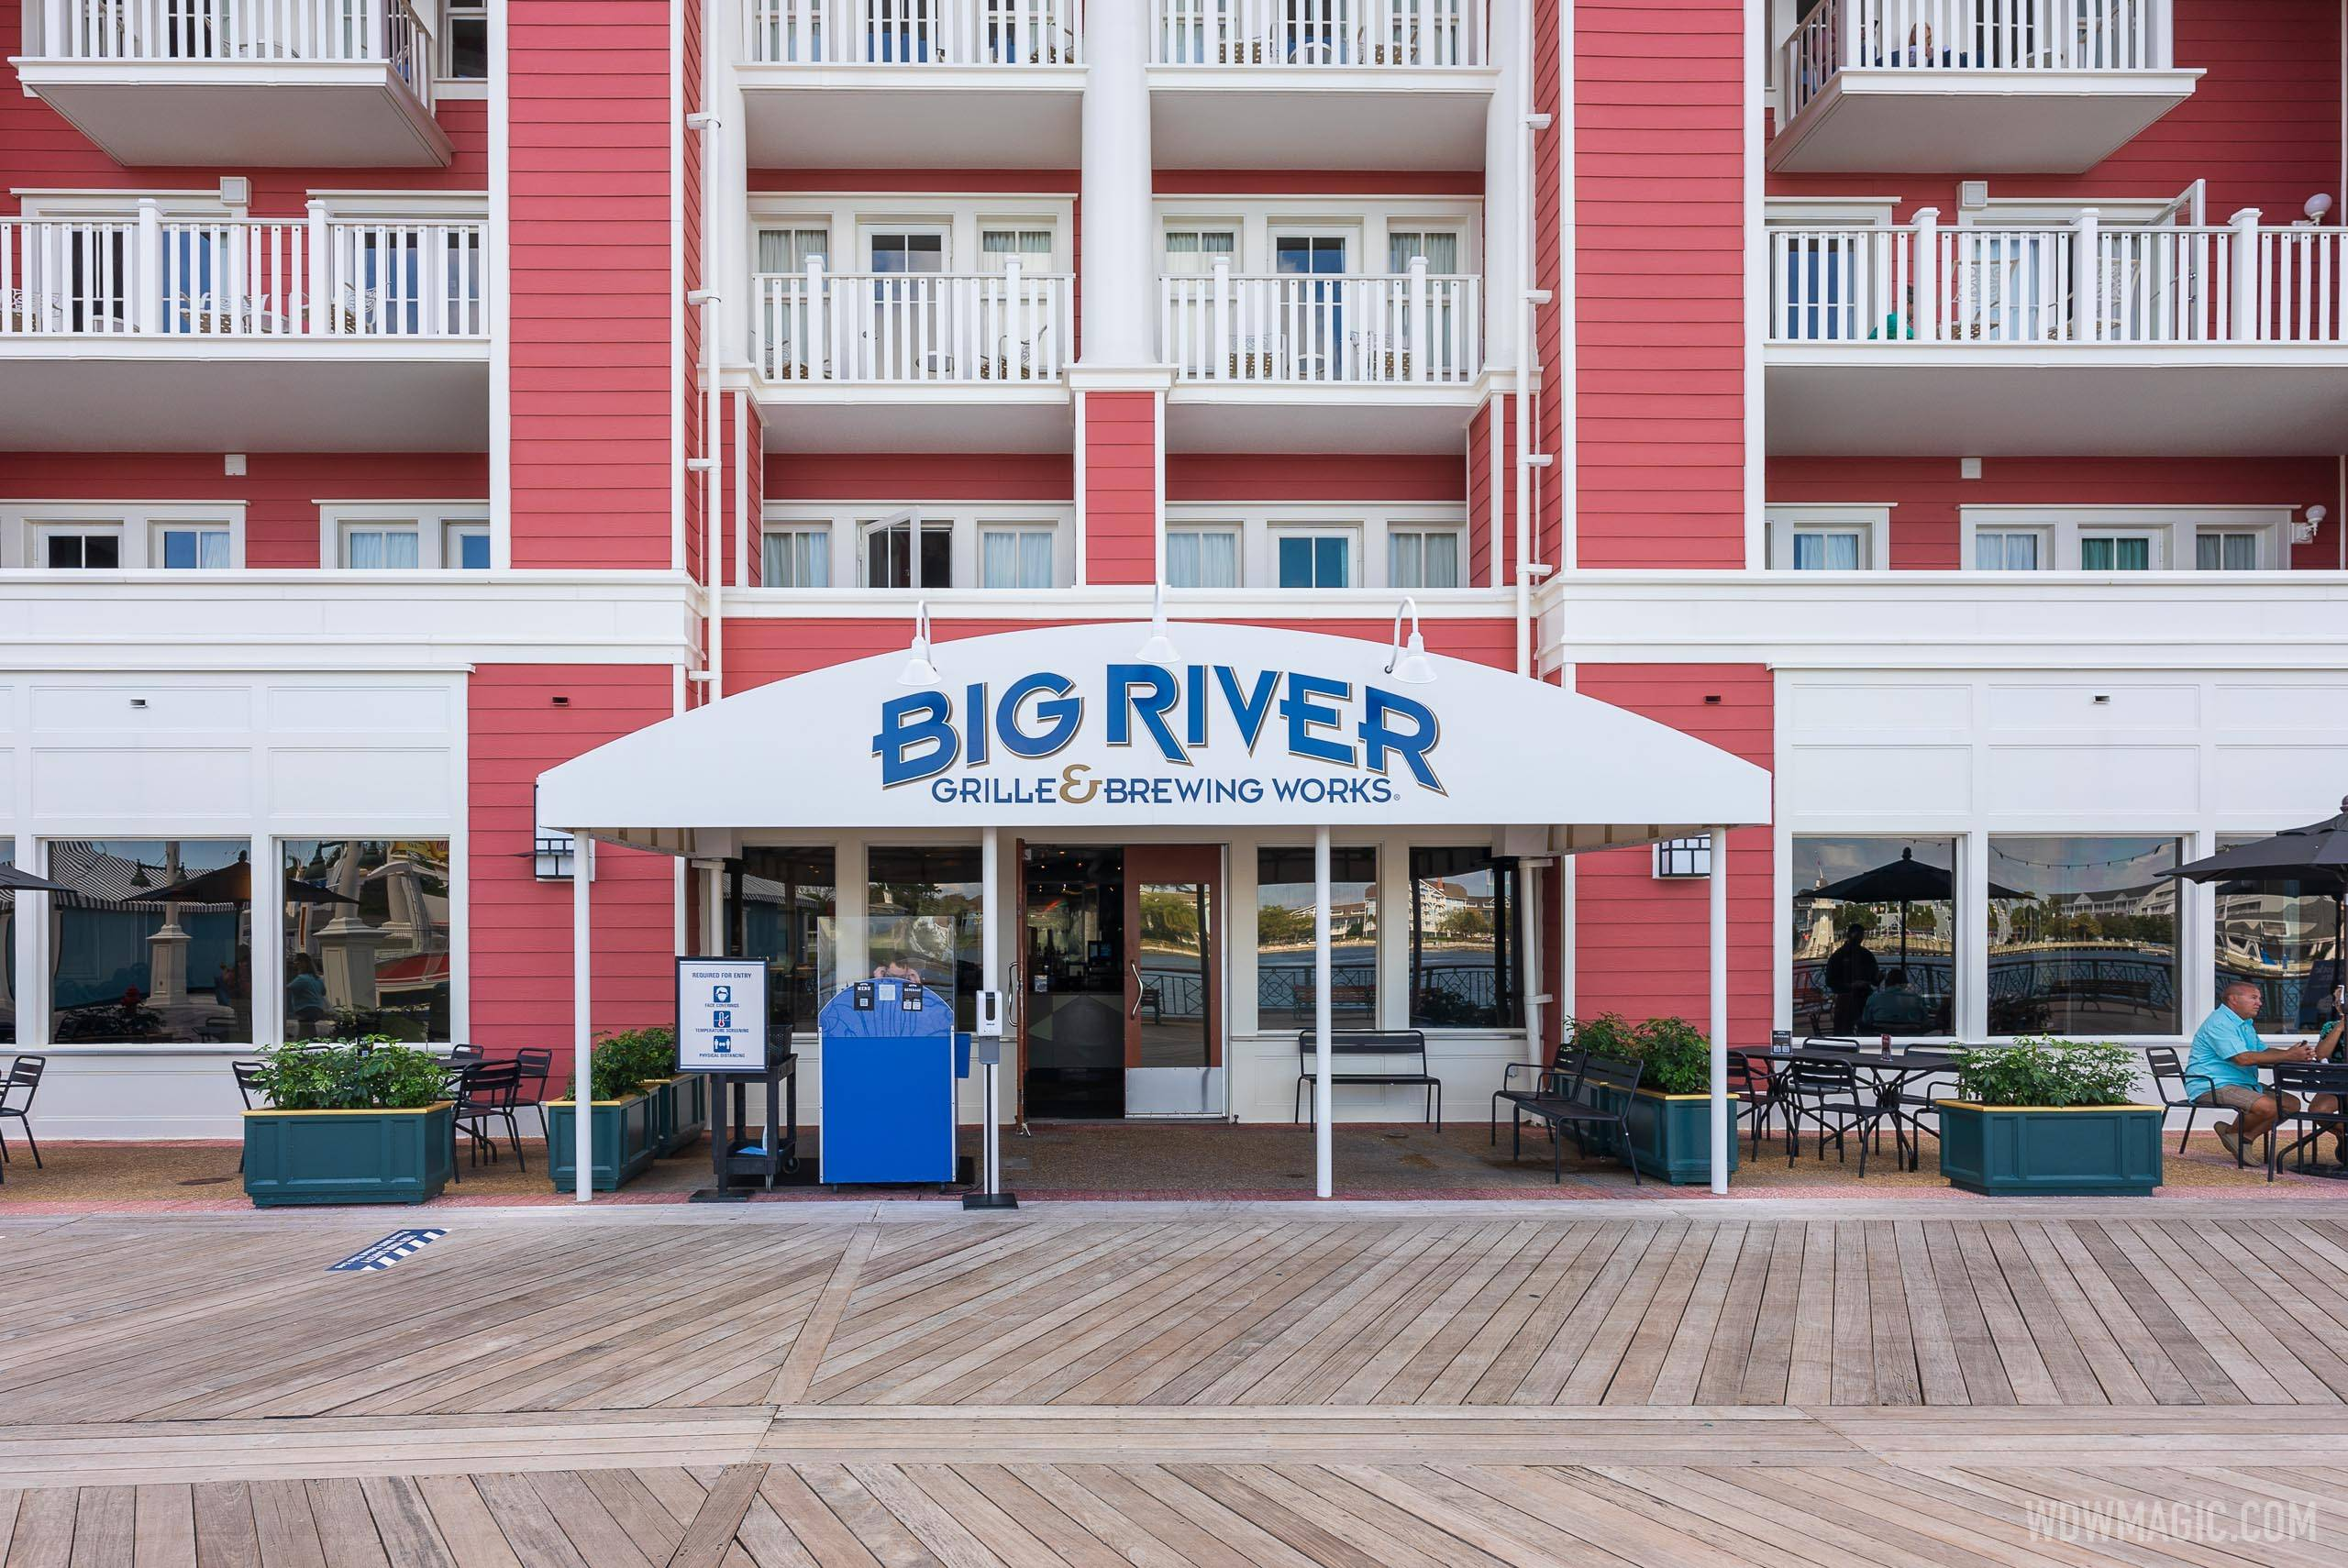 Big River Grille and Brewing Works overview